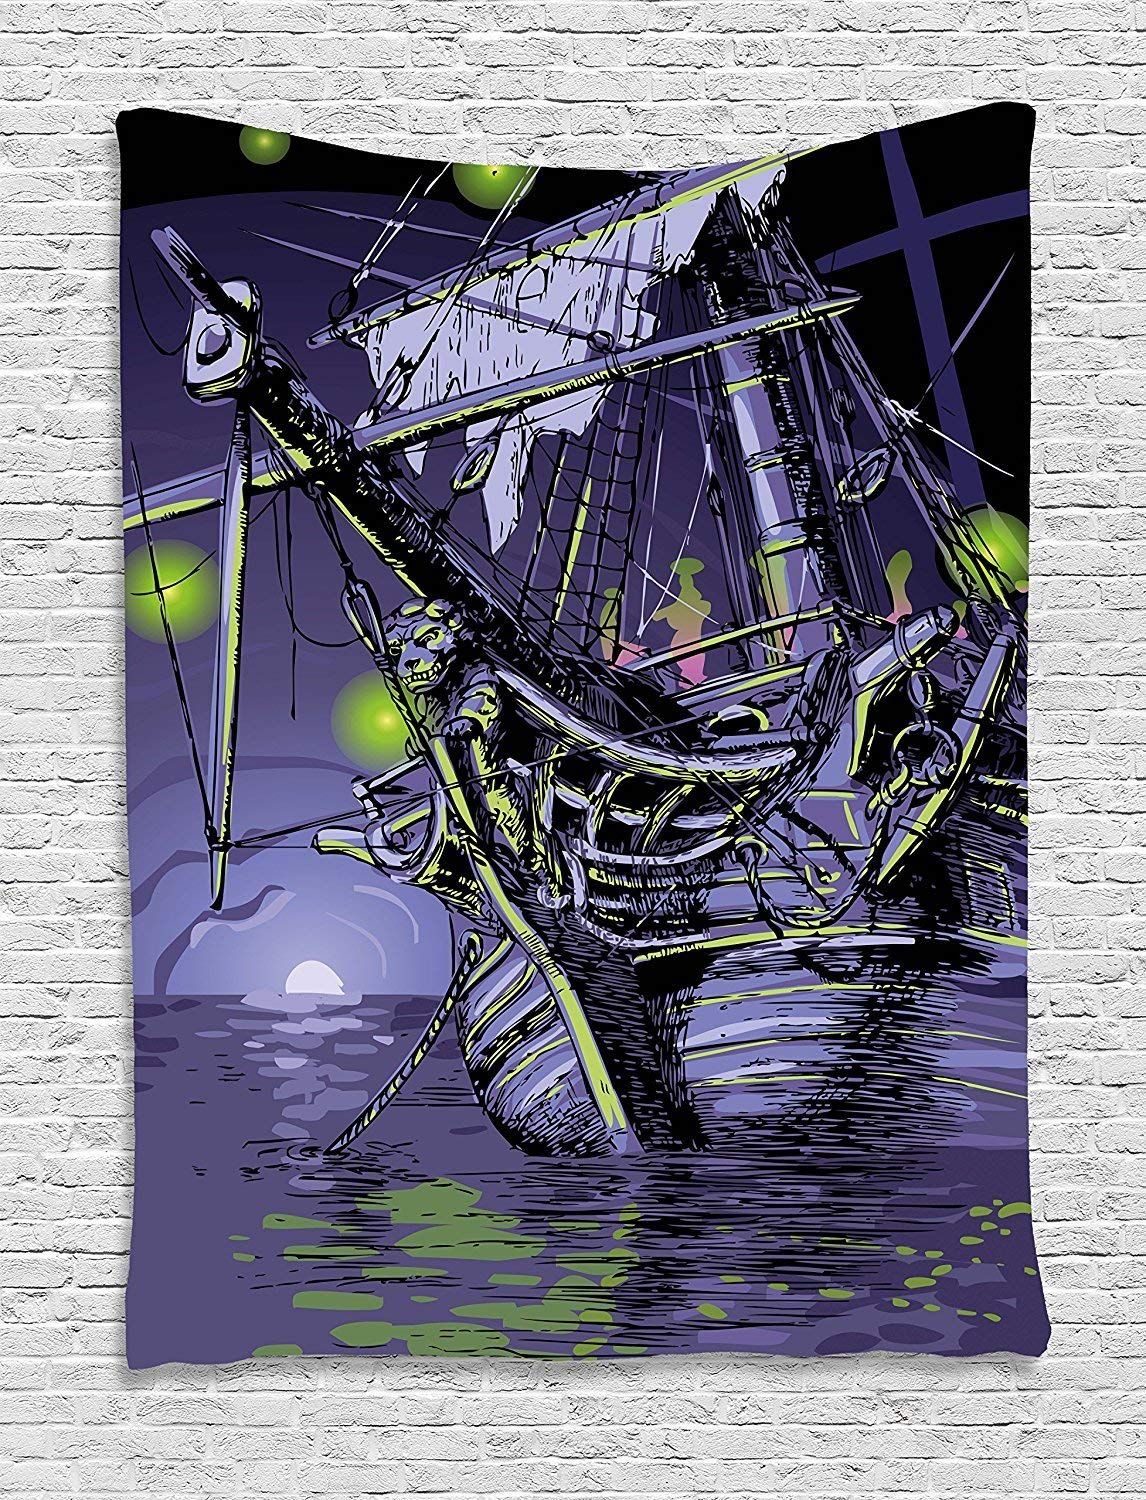 XHFITCLtd Pirate Ship Tapestry, Ghost Ship on Fantasy Caribbean Ocean Adventure Island Haunted Vessel, Wall Hanging for Bedroom Living Room Dorm, 60 W X 80 L Inches, Purple Lime Green